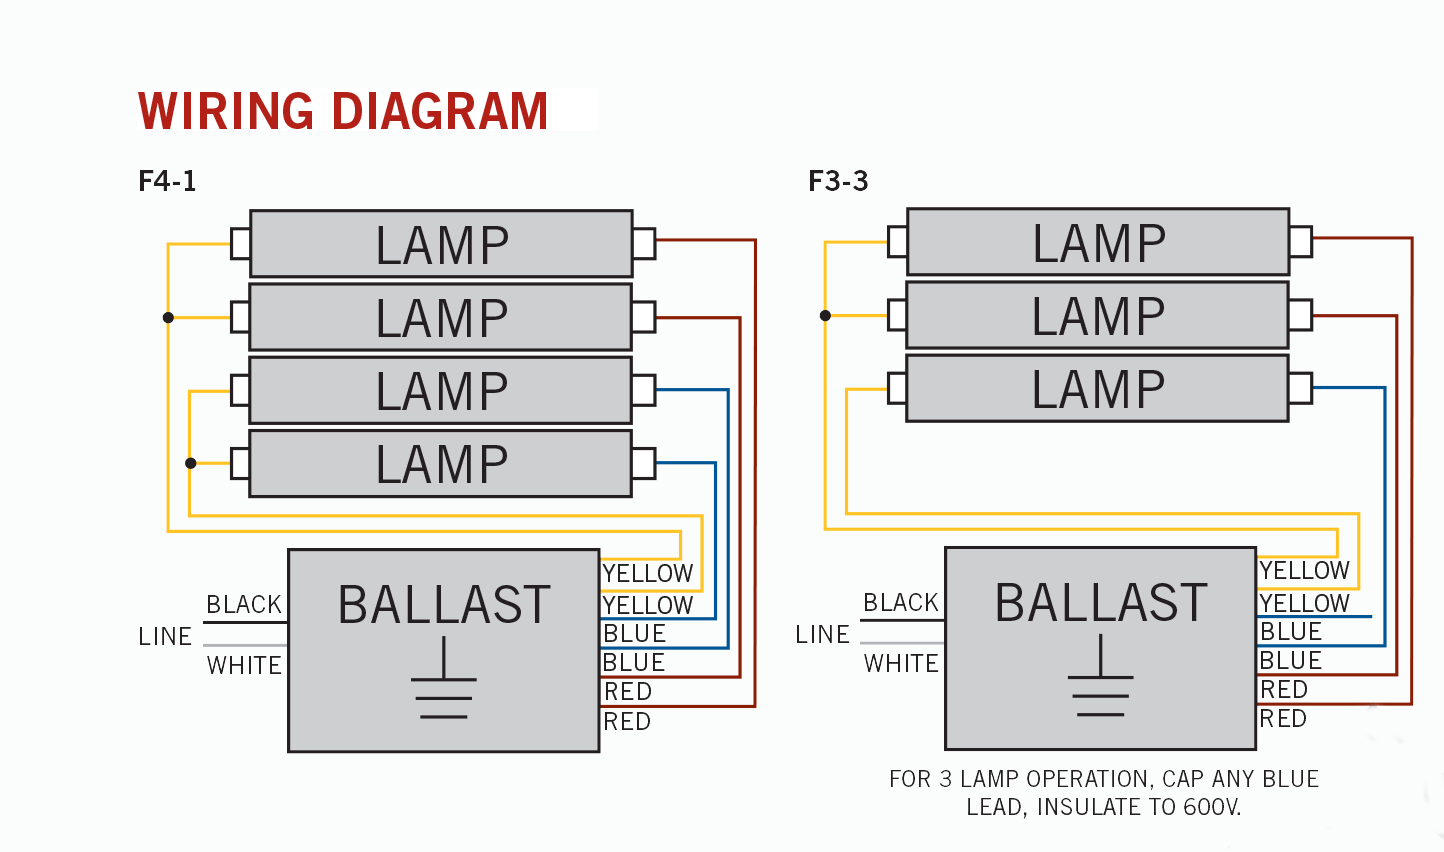 electronic ballast keystone 3 or 4 lamp t8 model kteb-432-uv-is-n-p-emi |  orilis led lighting solutions  orilis led lighting